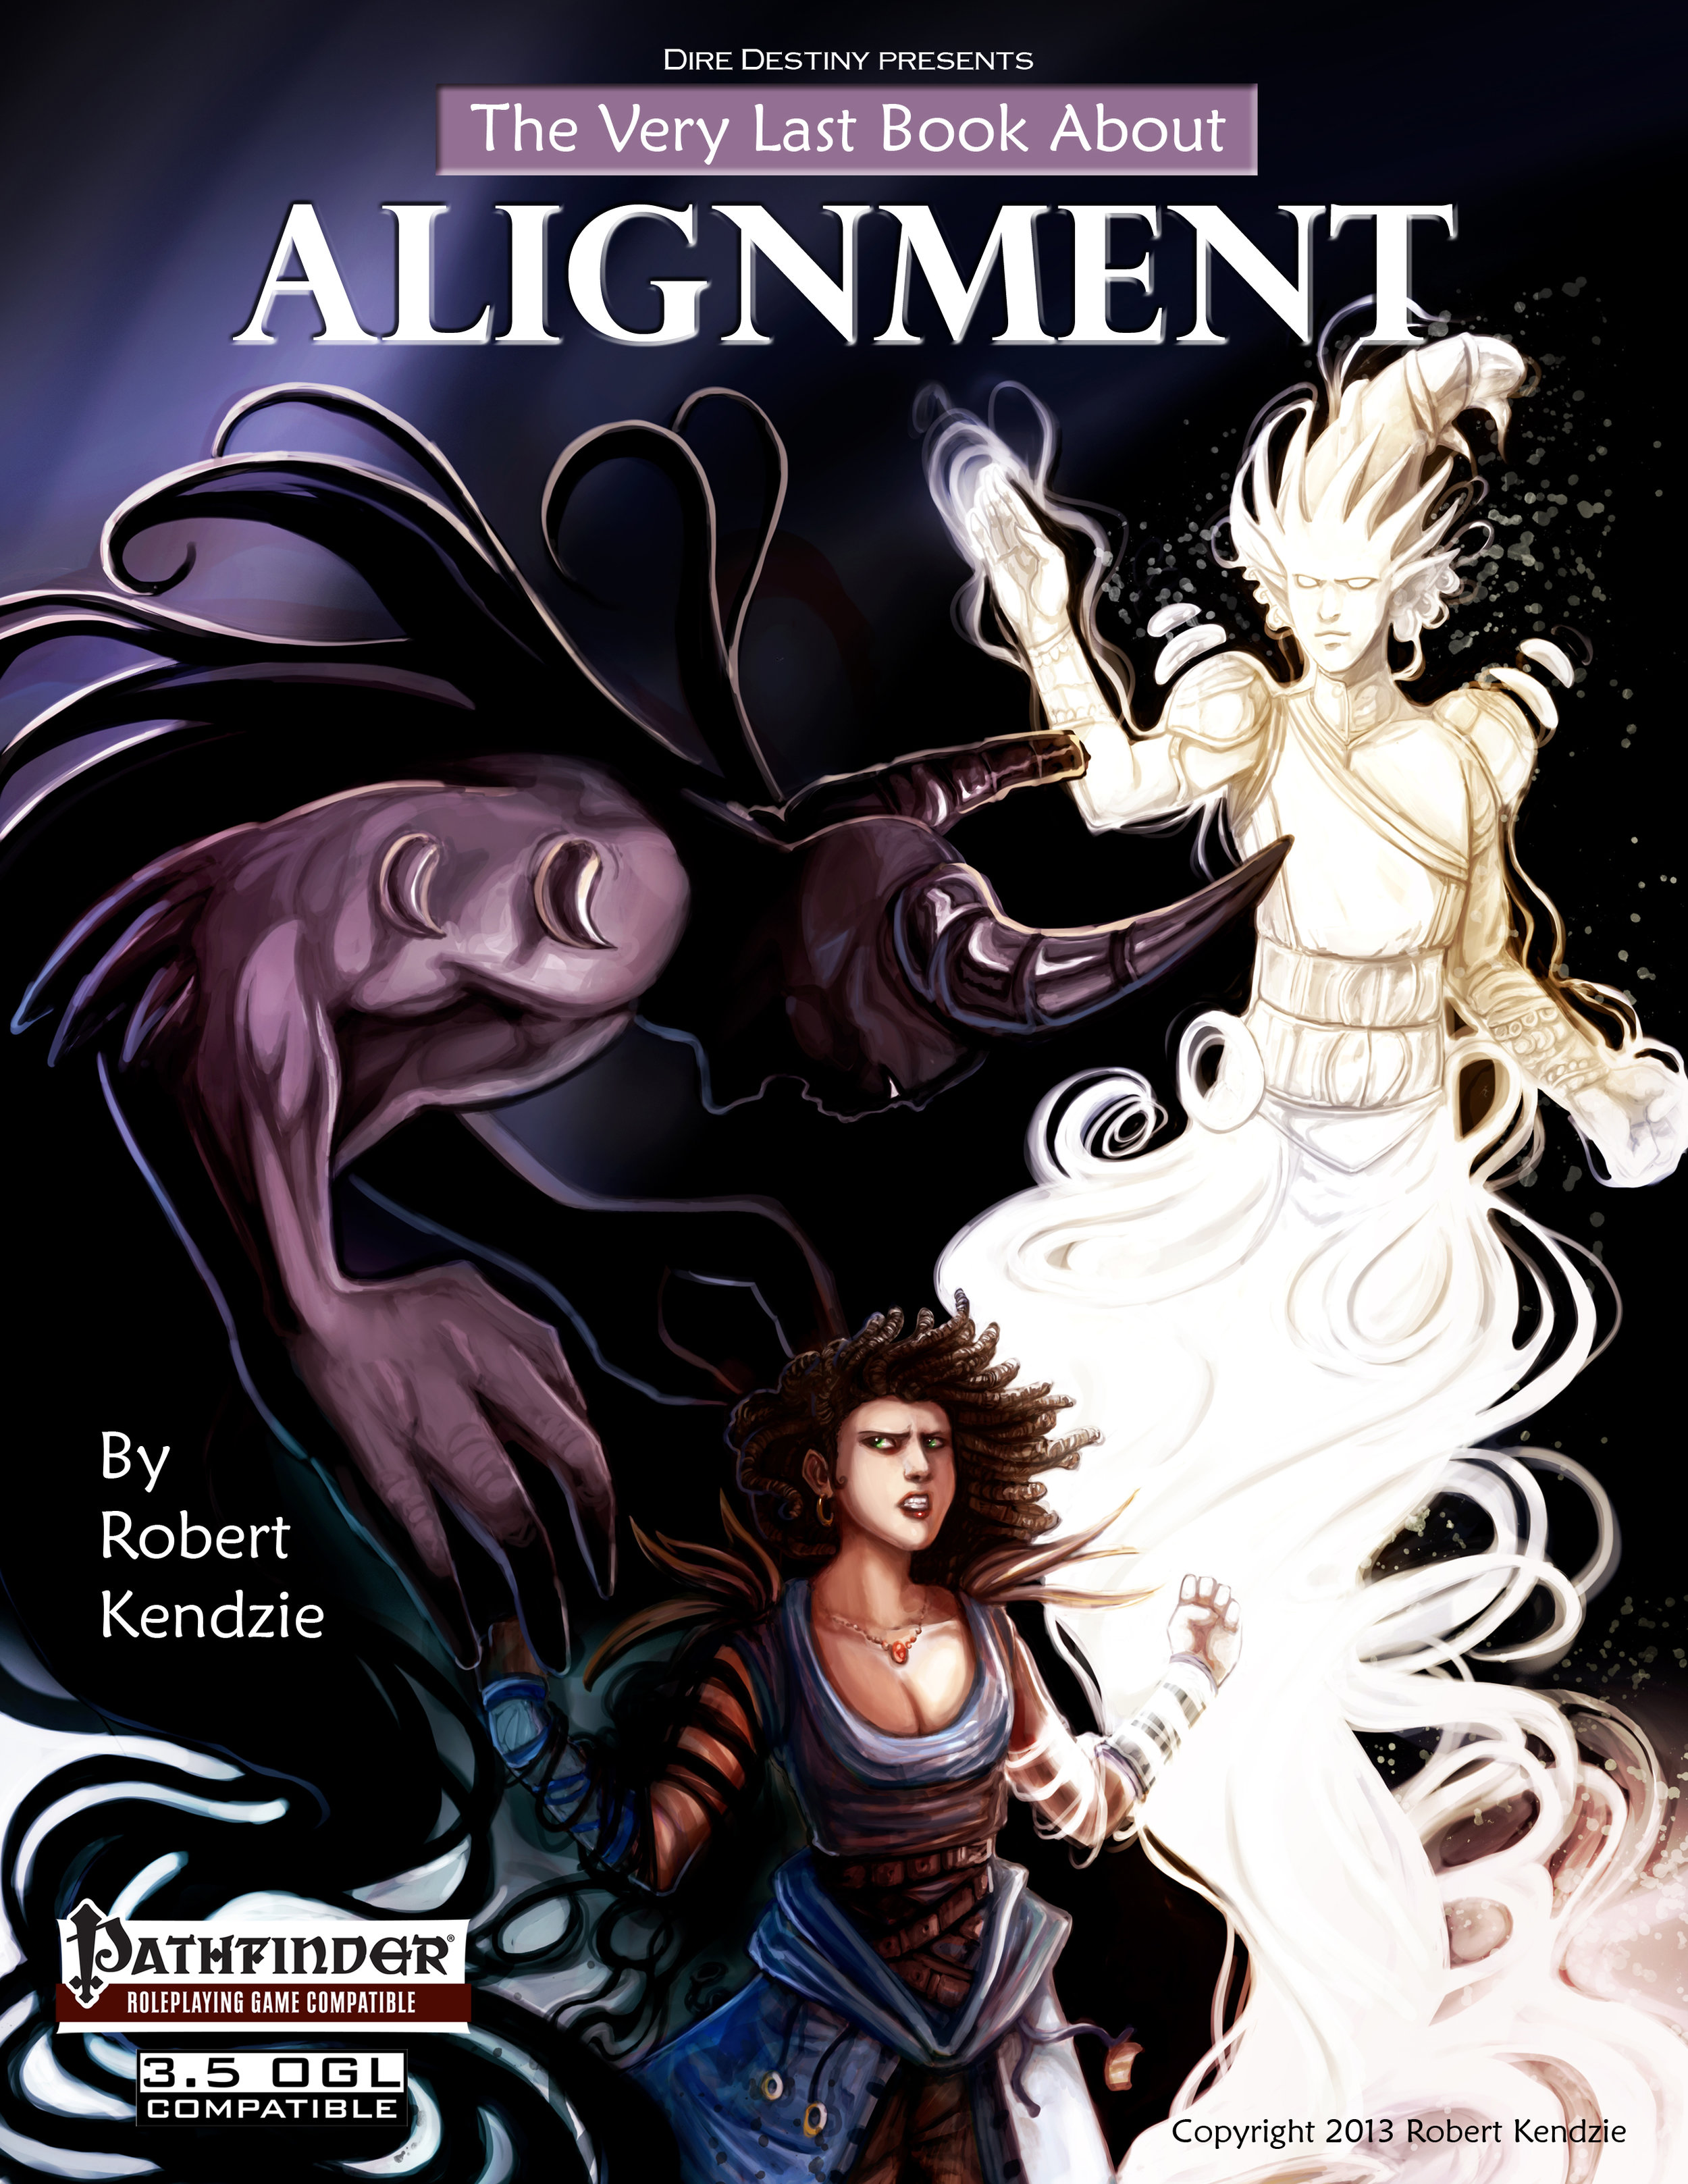 The Very Last Book About Alignment - Your character can be a beacon of hope and justice in a dark and dangerous world, or cultivate a soul so black that angels hide their faces in fear. Whichever way you prefer to play, this book will provide you with the rules, resources, and inspiration. Make the most maligned and misunderstood aspect of the game a vital part of the roleplay experience once more. Within these pages, age-old questions are answered and new powers are unlocked for those willing to take a stand for Good or Evil, Law or Chaos... and even for those who choose to remain scrupulously Neutral. Copyright 2013, black & white, 40 pages. Cover by Eva Dennis.